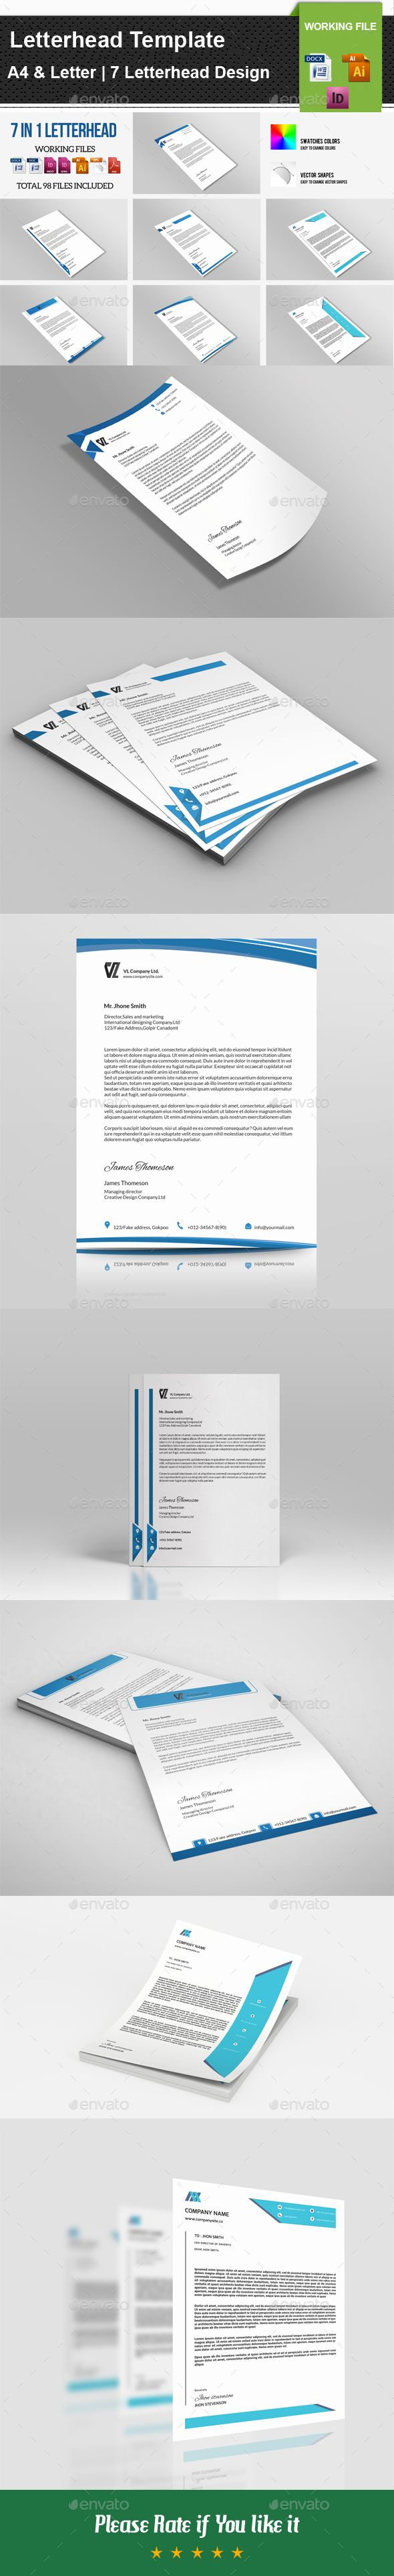 7 in 1 #Letterhead Template V01 - #Stationery Print Templates Download here: https://graphicriver.net/item/7-in-1-letterhead-template-v01/19724554?ref=alena994